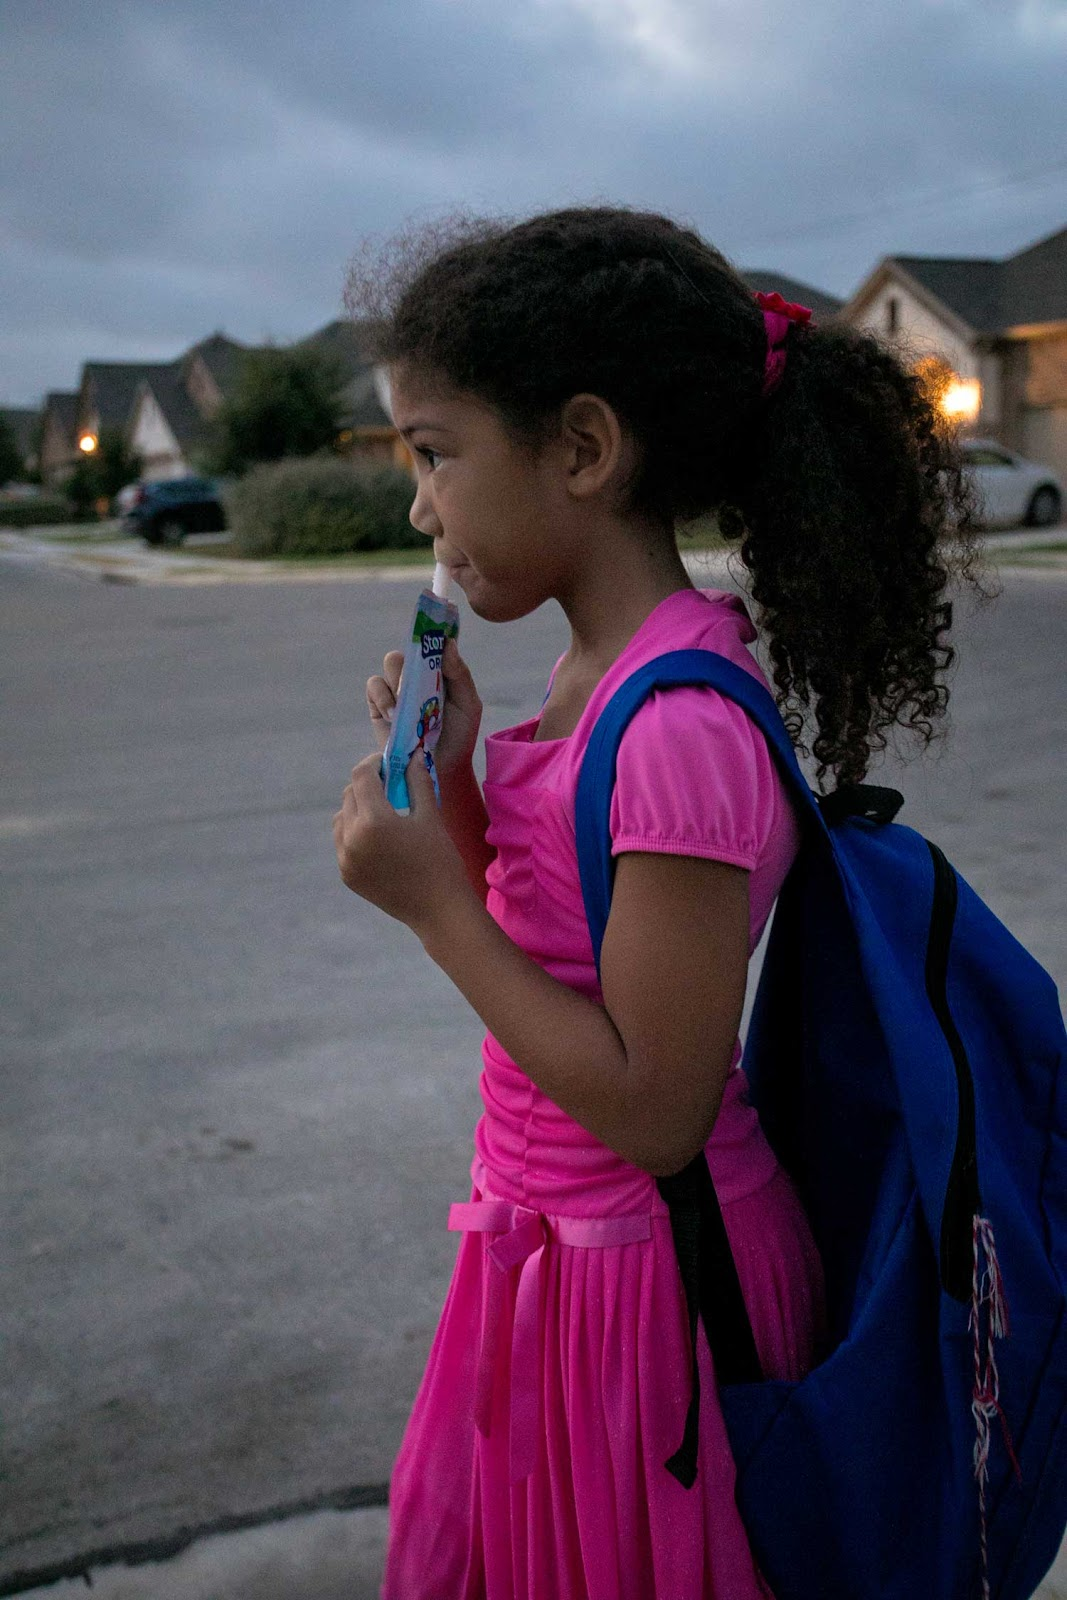 Little girl waiting for the bus. Our homeschool to public school transition.